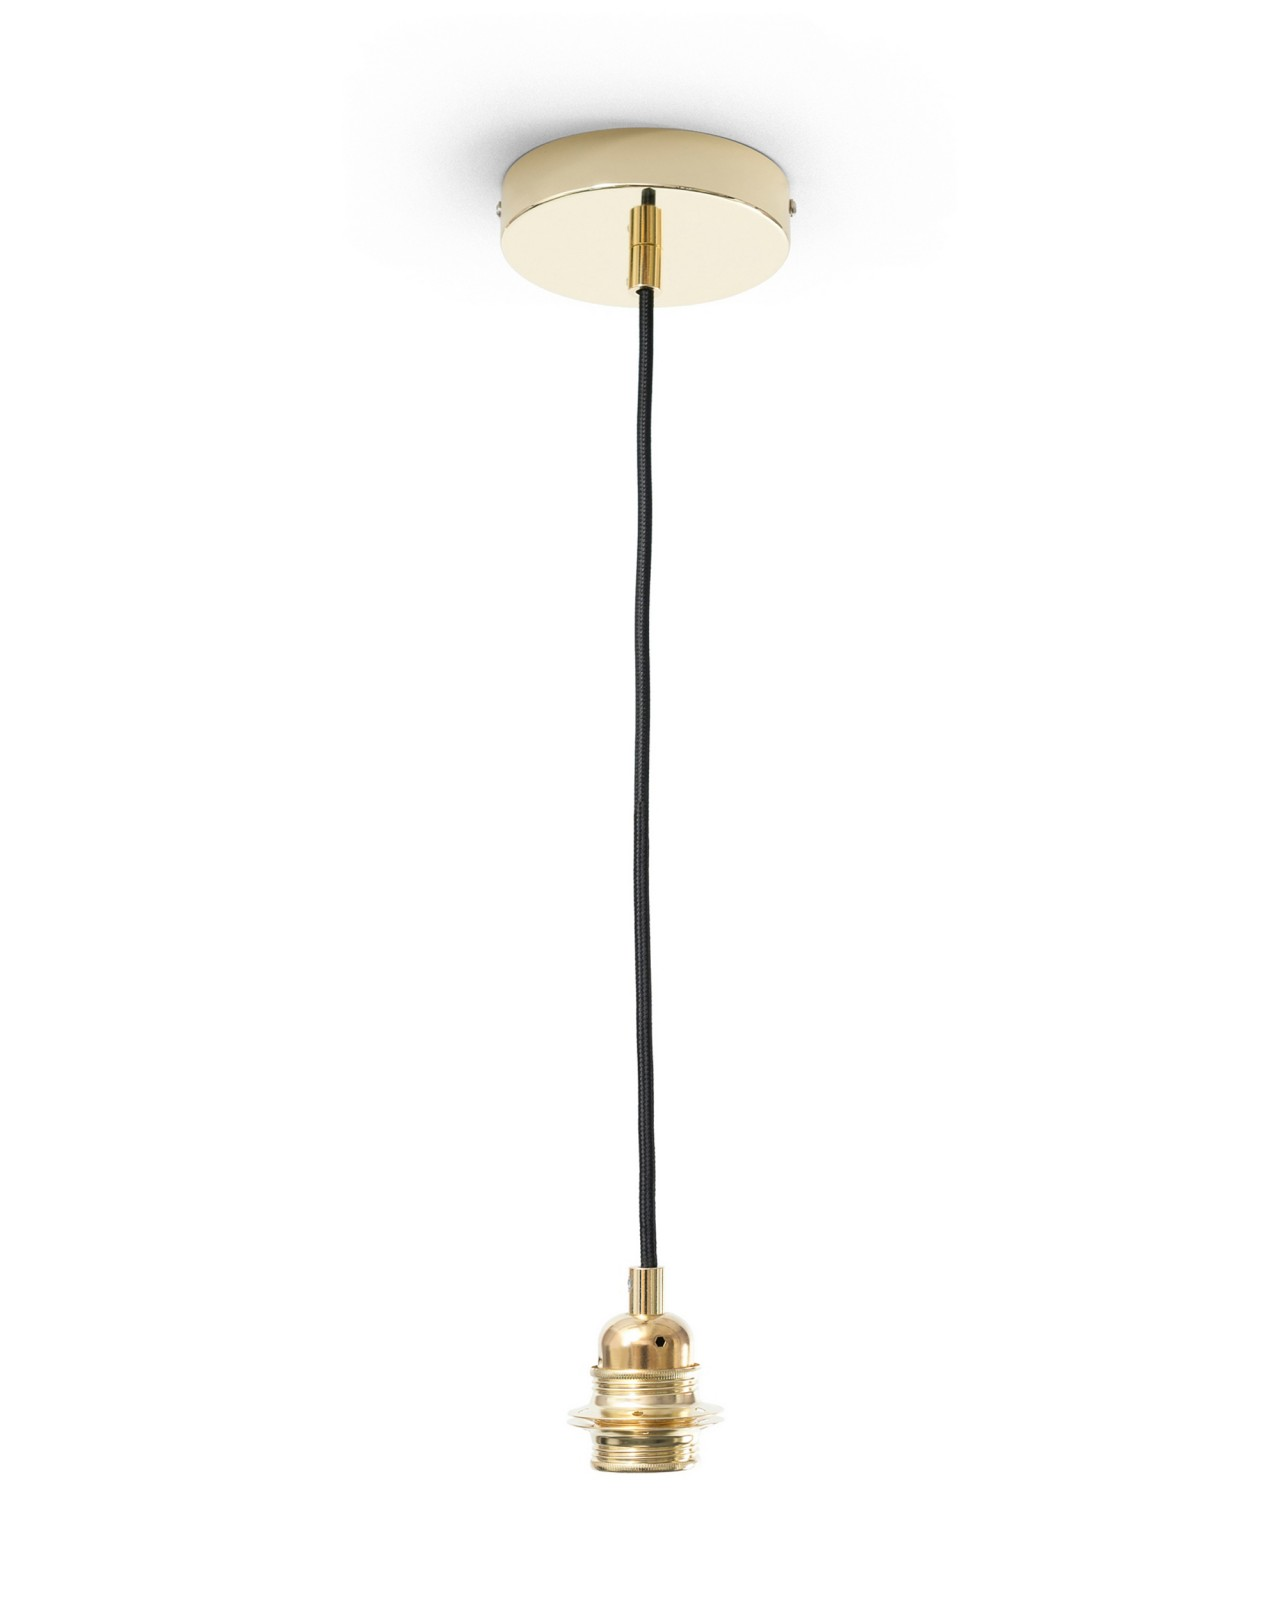 GARDEN BIRDS Pendant Lamp